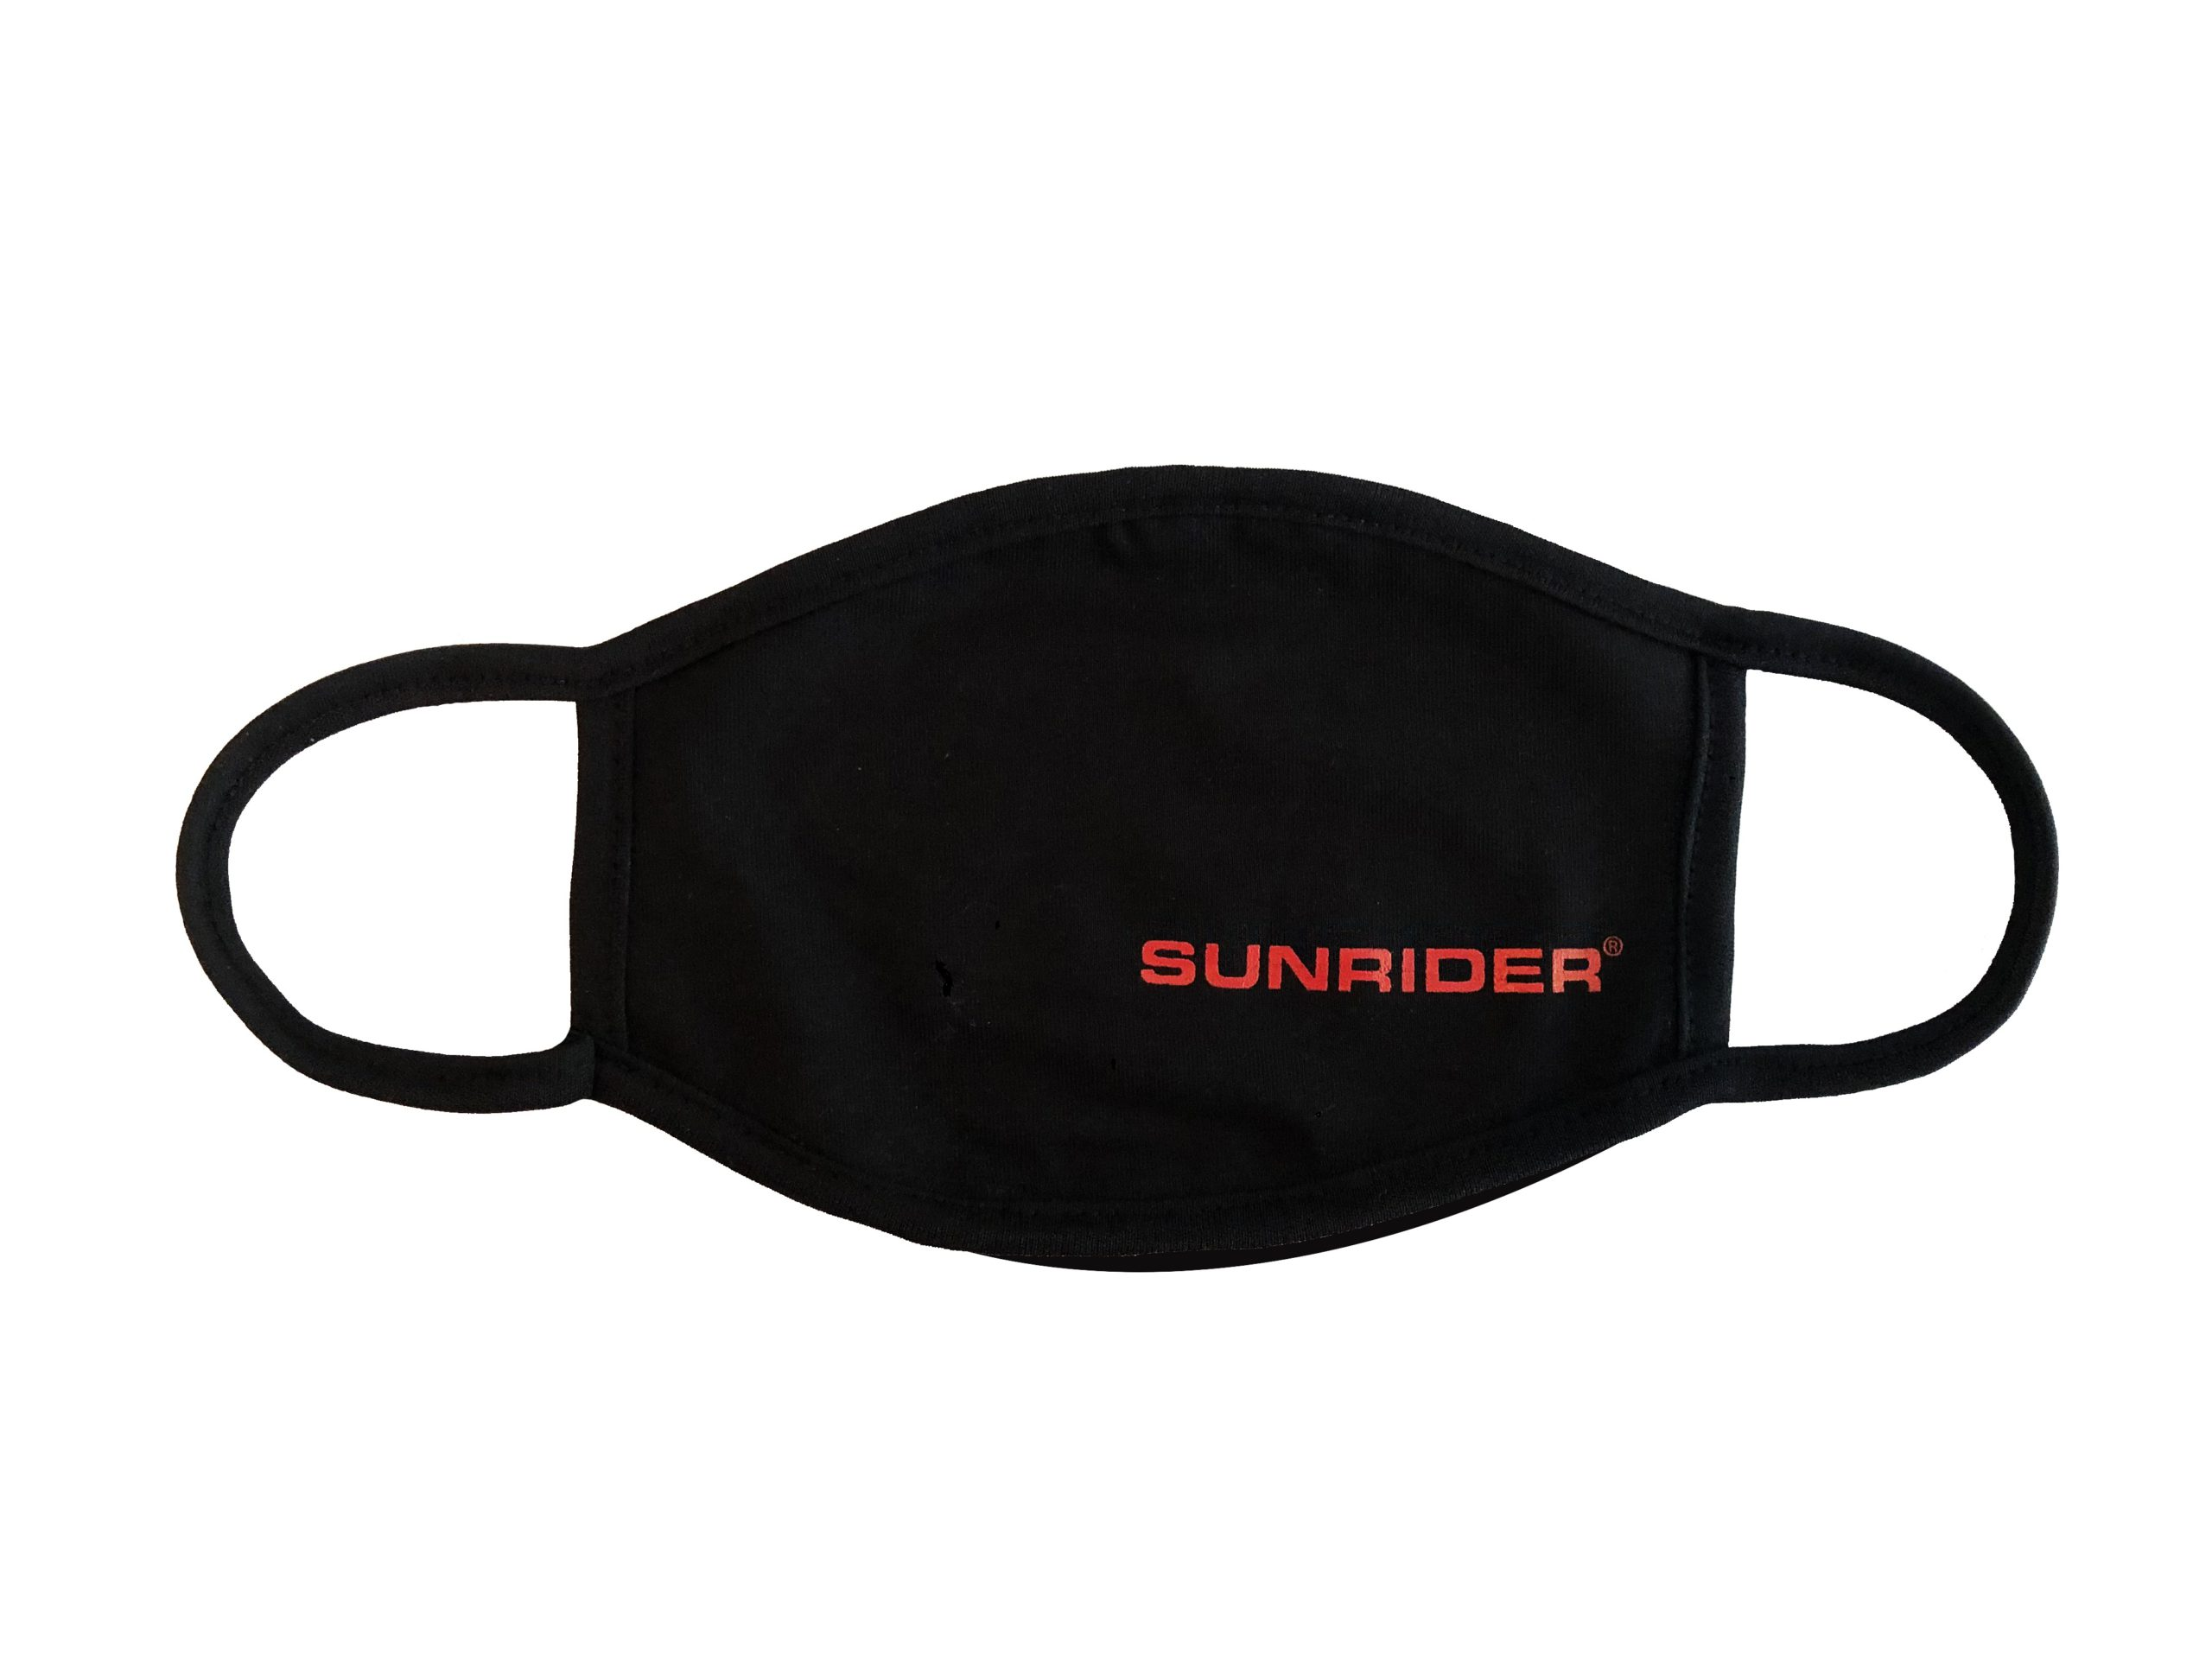 Sunrider<sup>®</sup> Face Mask